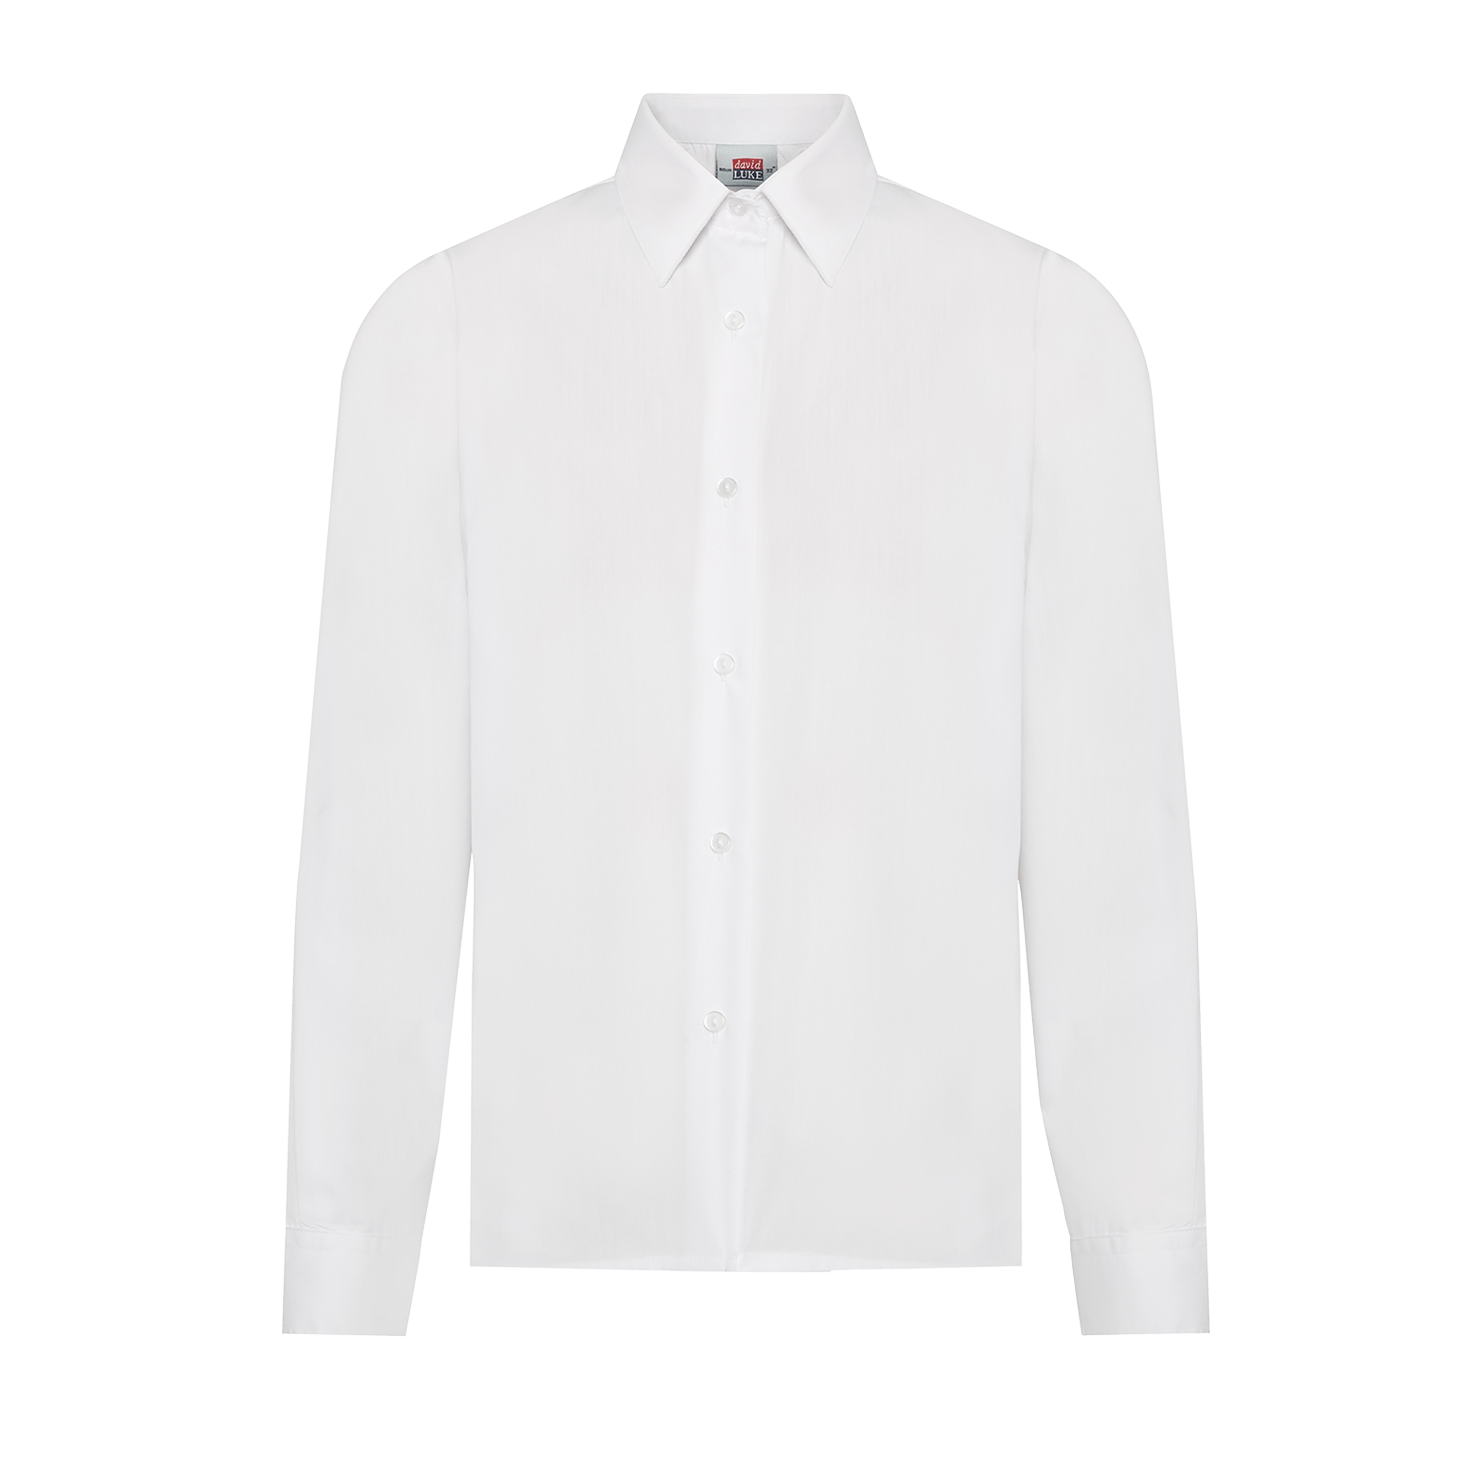 Twin Pack Claremont Boys L/S White Shirts - Superstitch 86